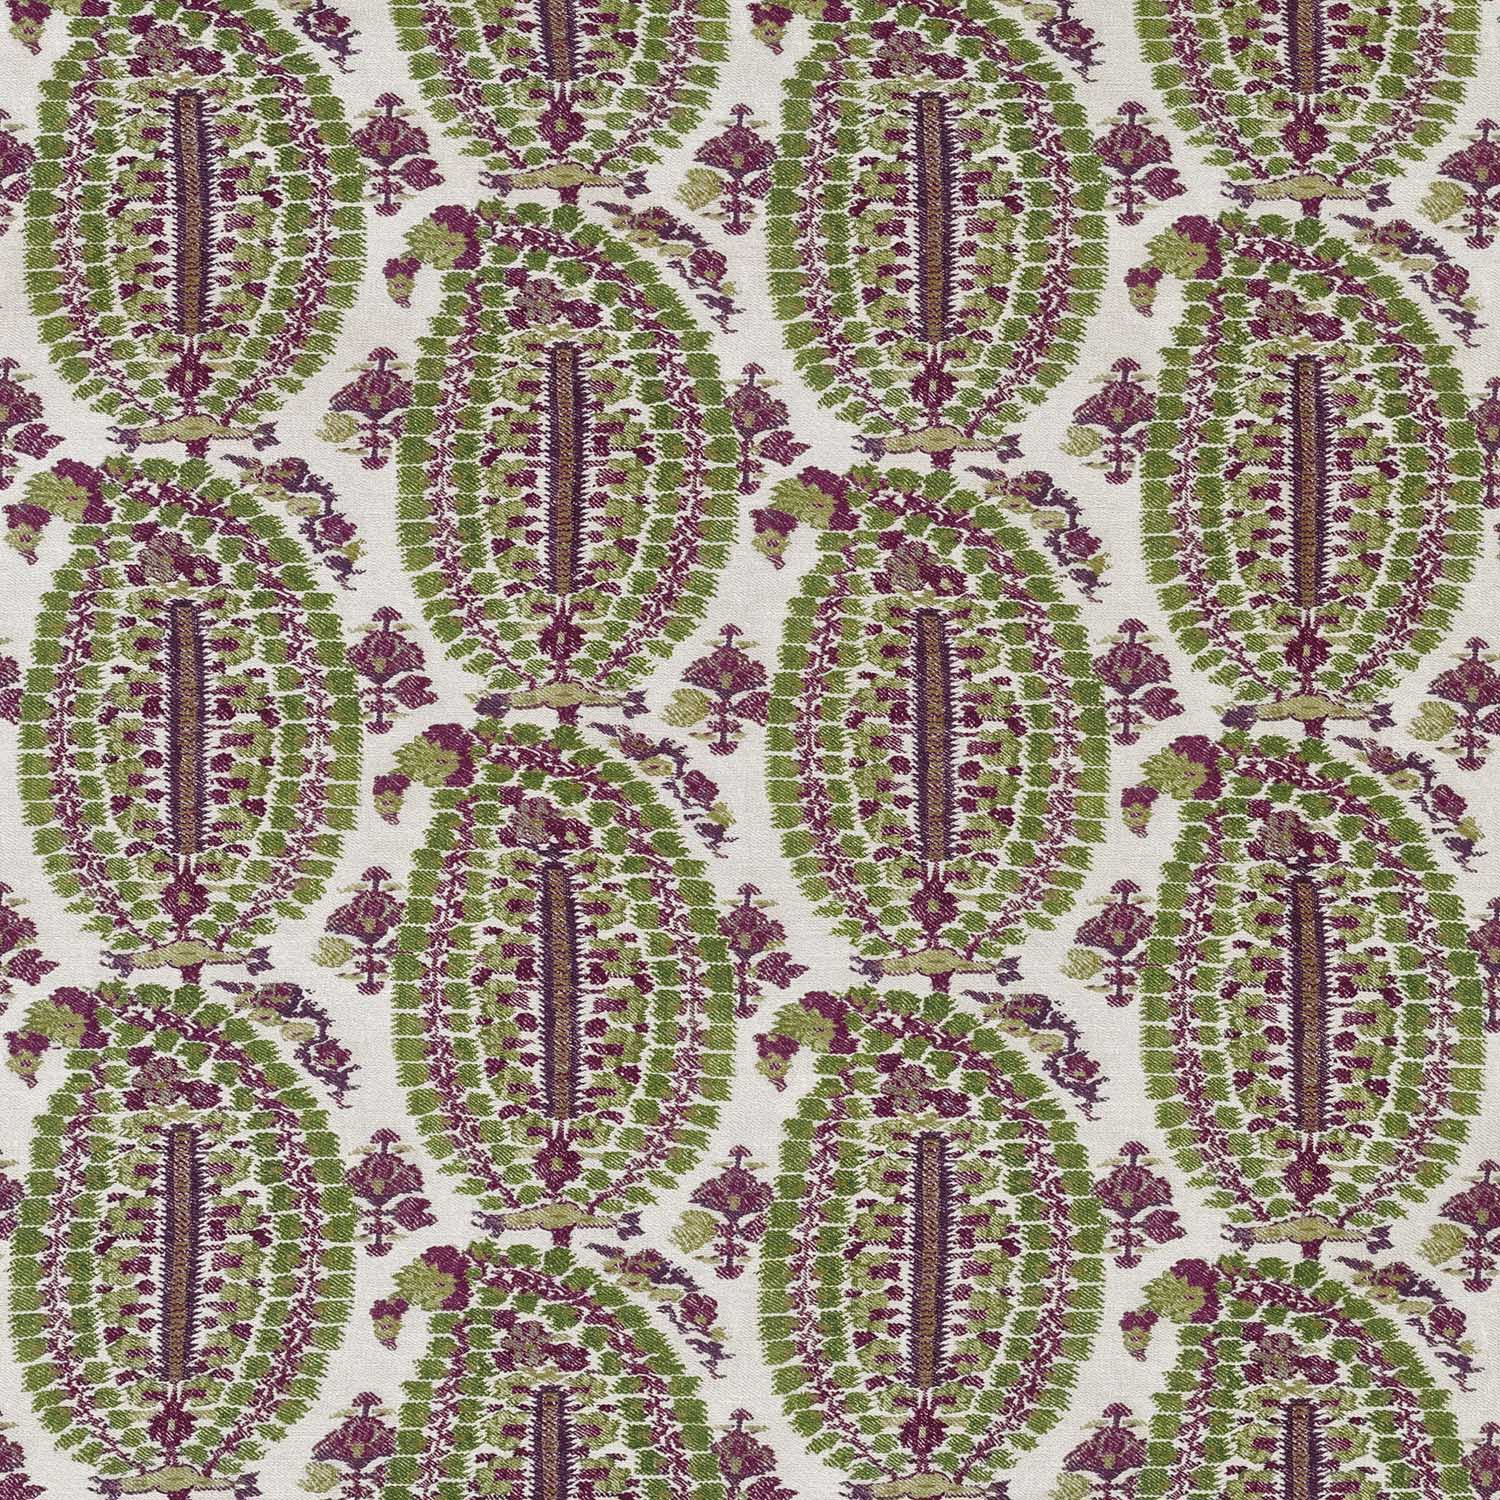 <p><strong>ANOUSHKA</strong>plum/green 1610-02<a href=/the-winthorp-collection/anoushka-plum-green-1610-02>More →</a></p>